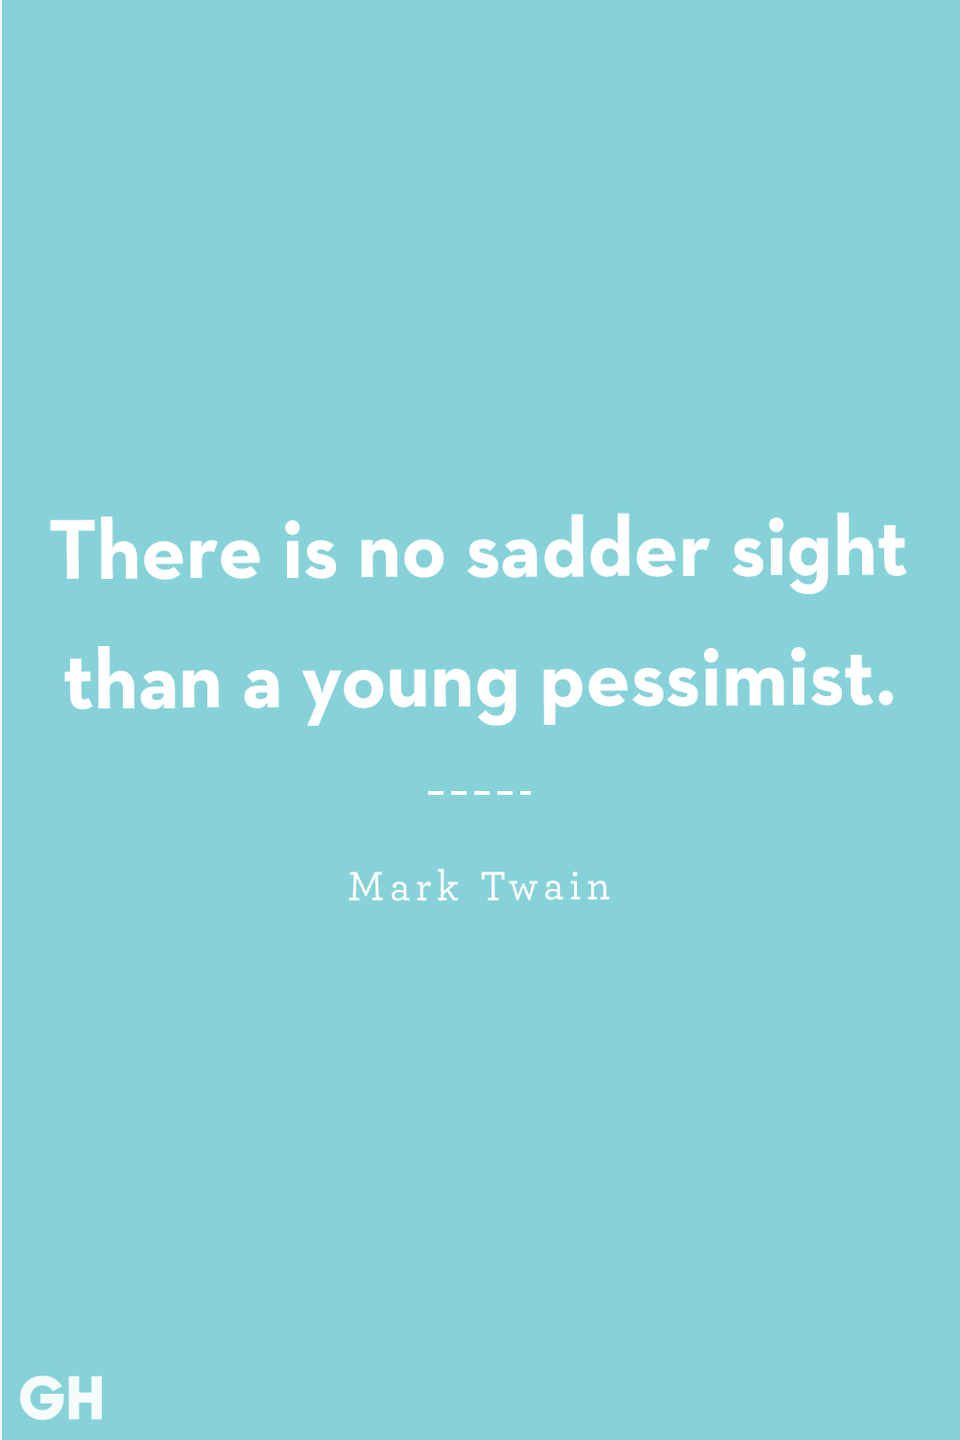 <p>There is no sadder sight than a young pessimist.</p>